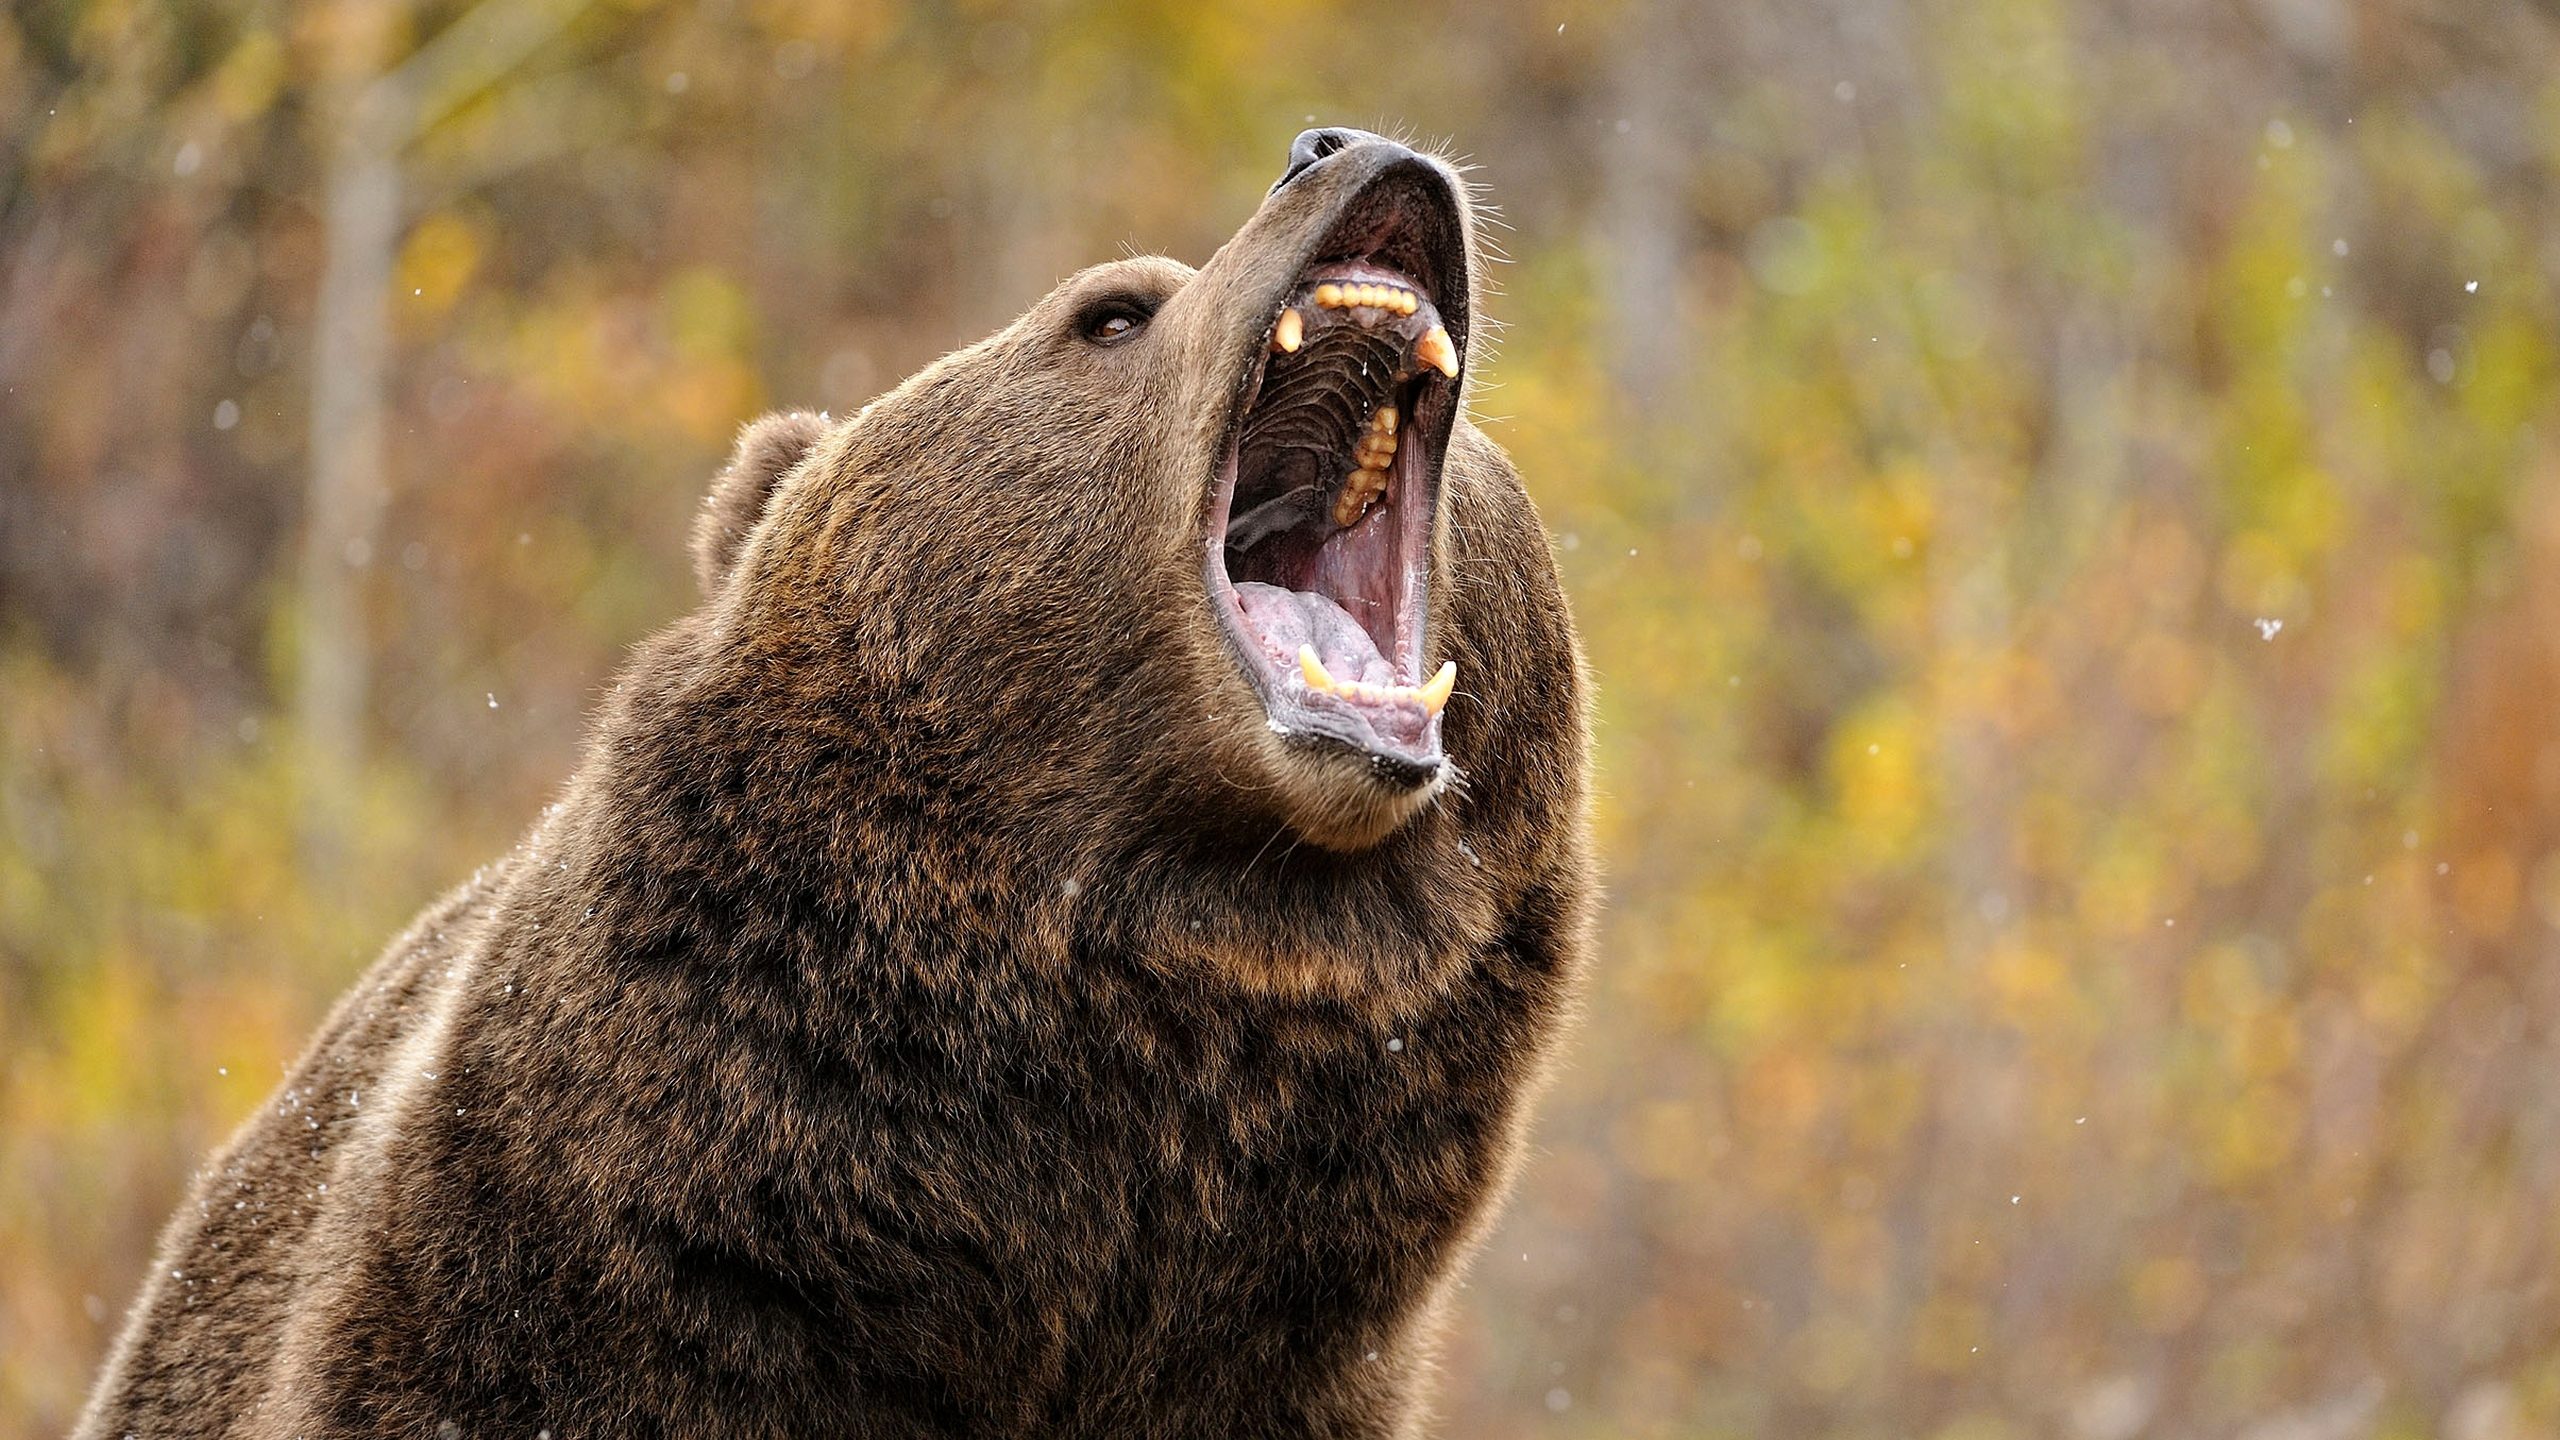 Grizzly bear nose